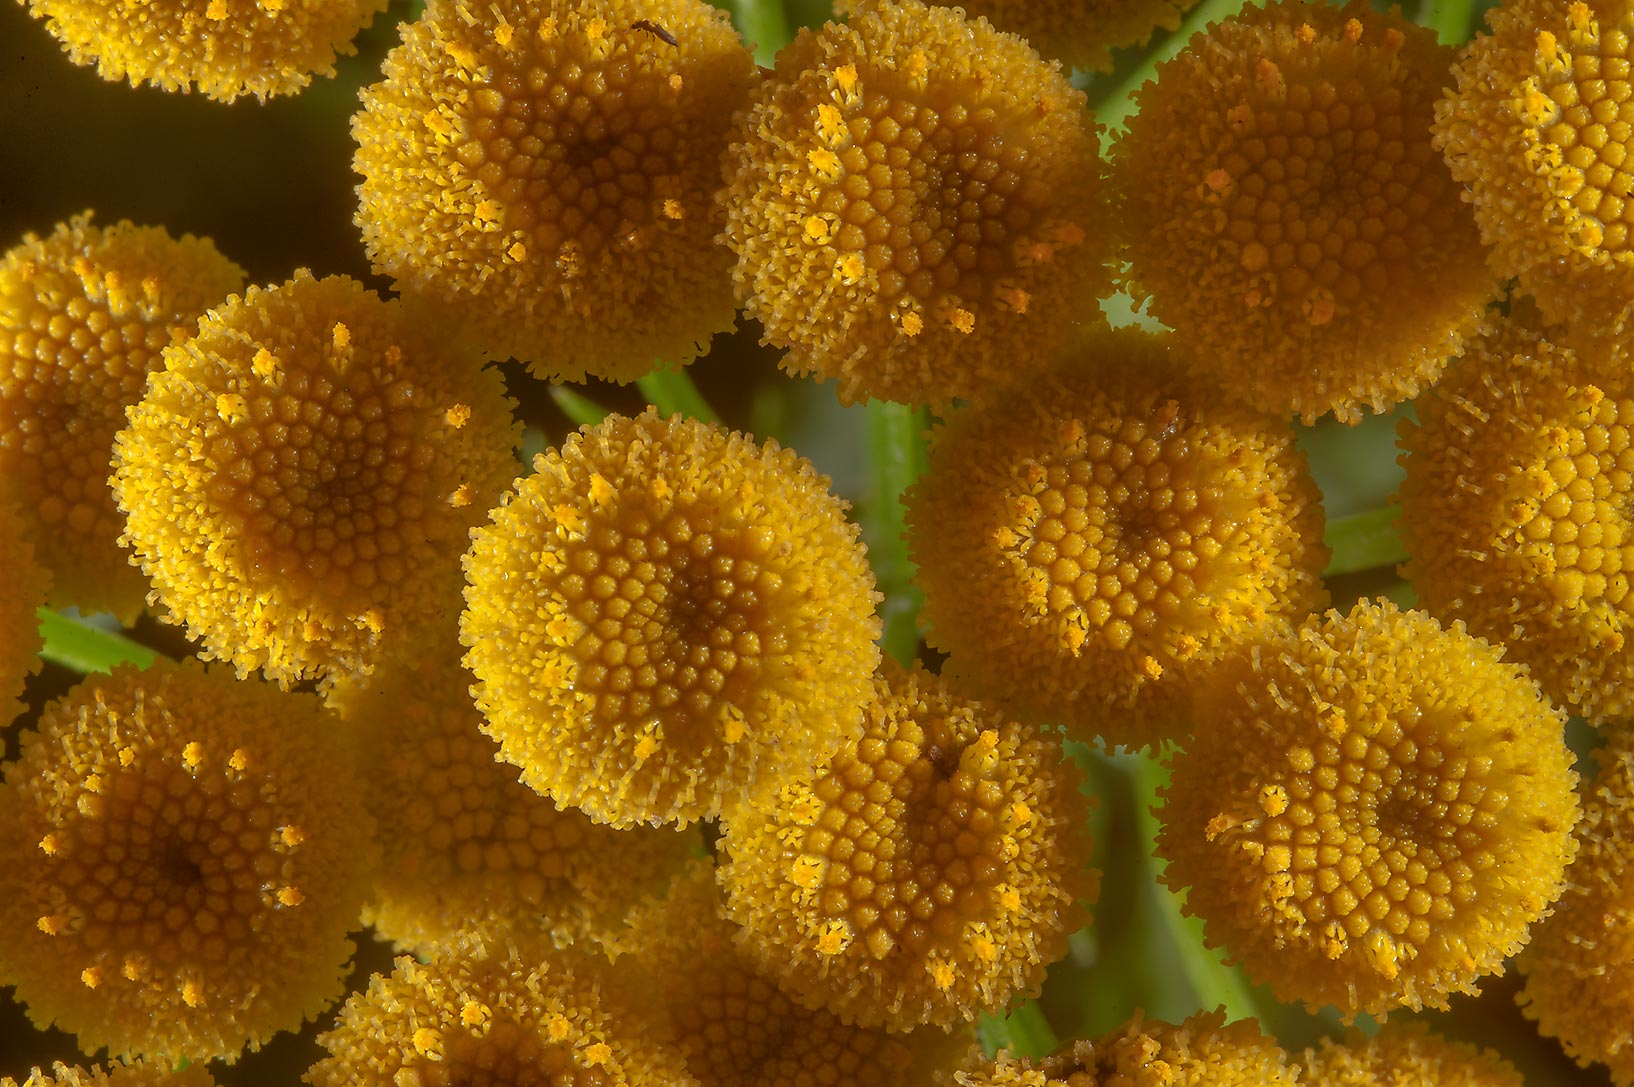 Photo 1623-15: Tansy flowers (Tanacetum vulgare, Russian name ...